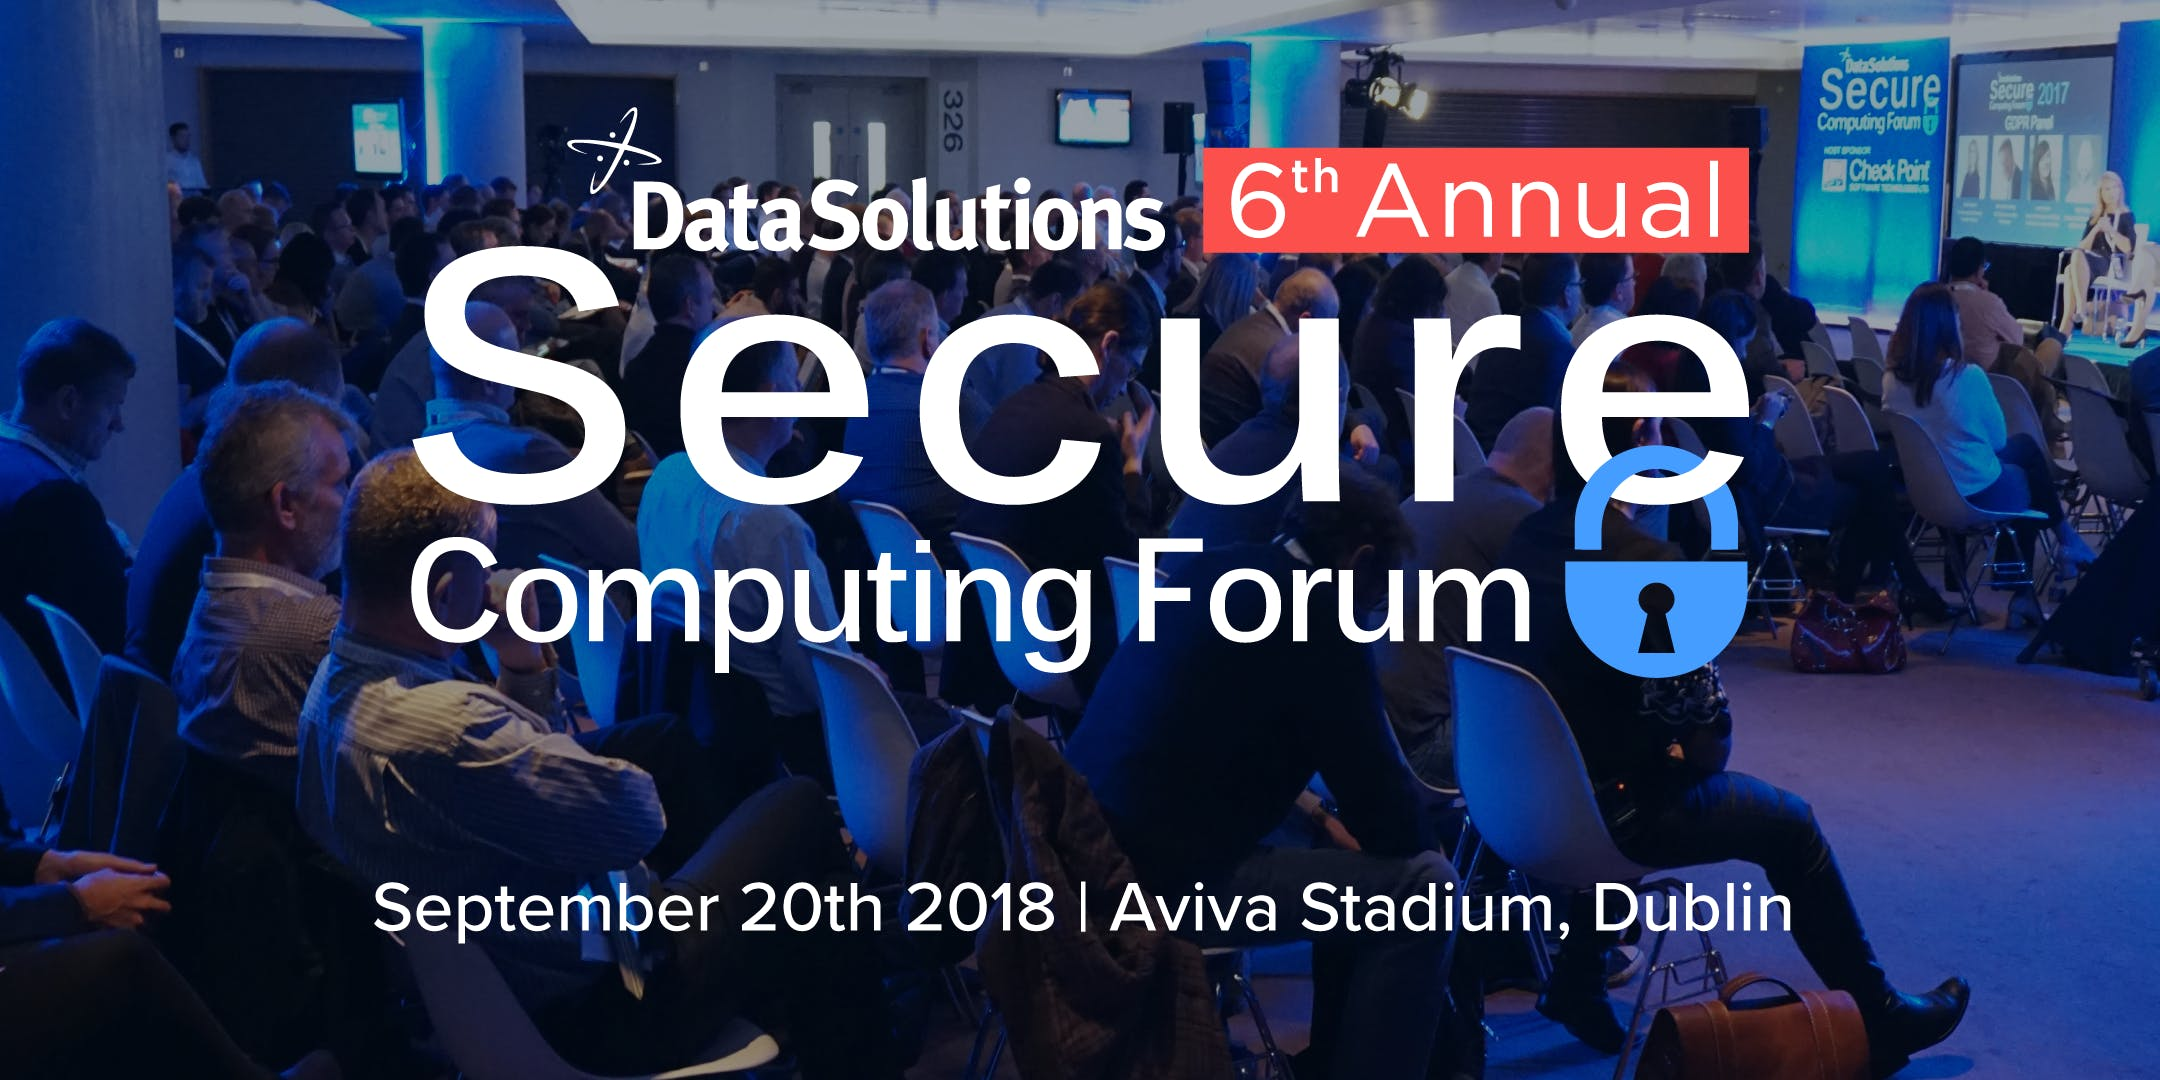 Secure Computing Forum 2018